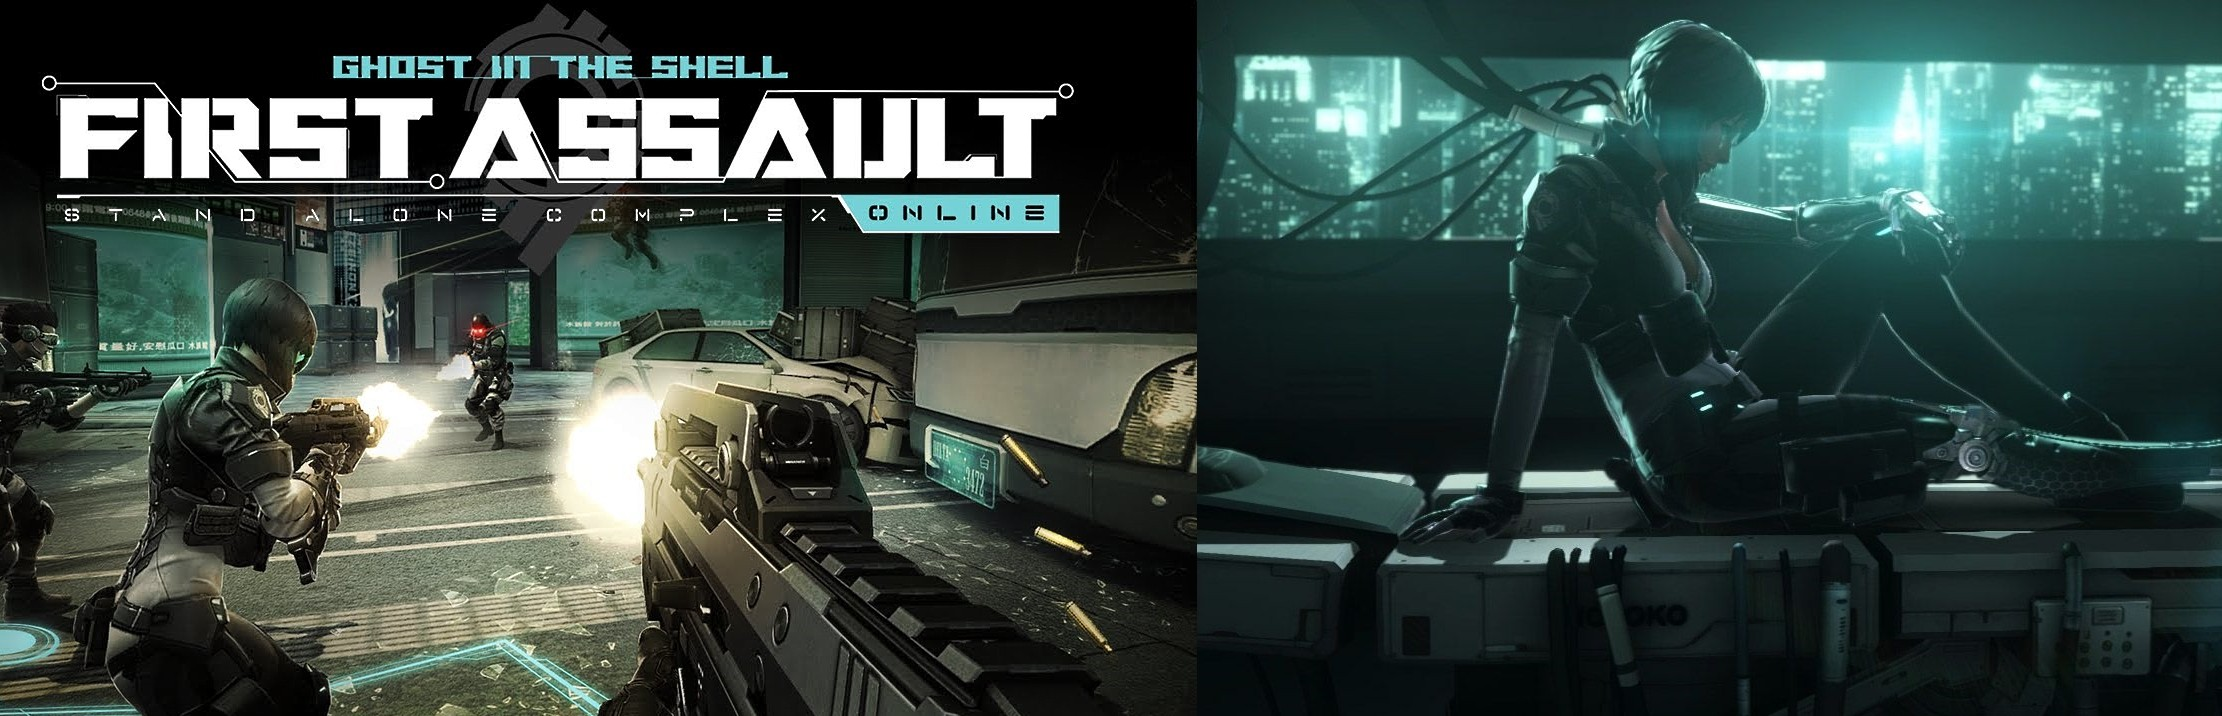 ghost-in-the-shell-first-assault-online-pc-steam-cyberpunk-videogioco-gameplay-recensione